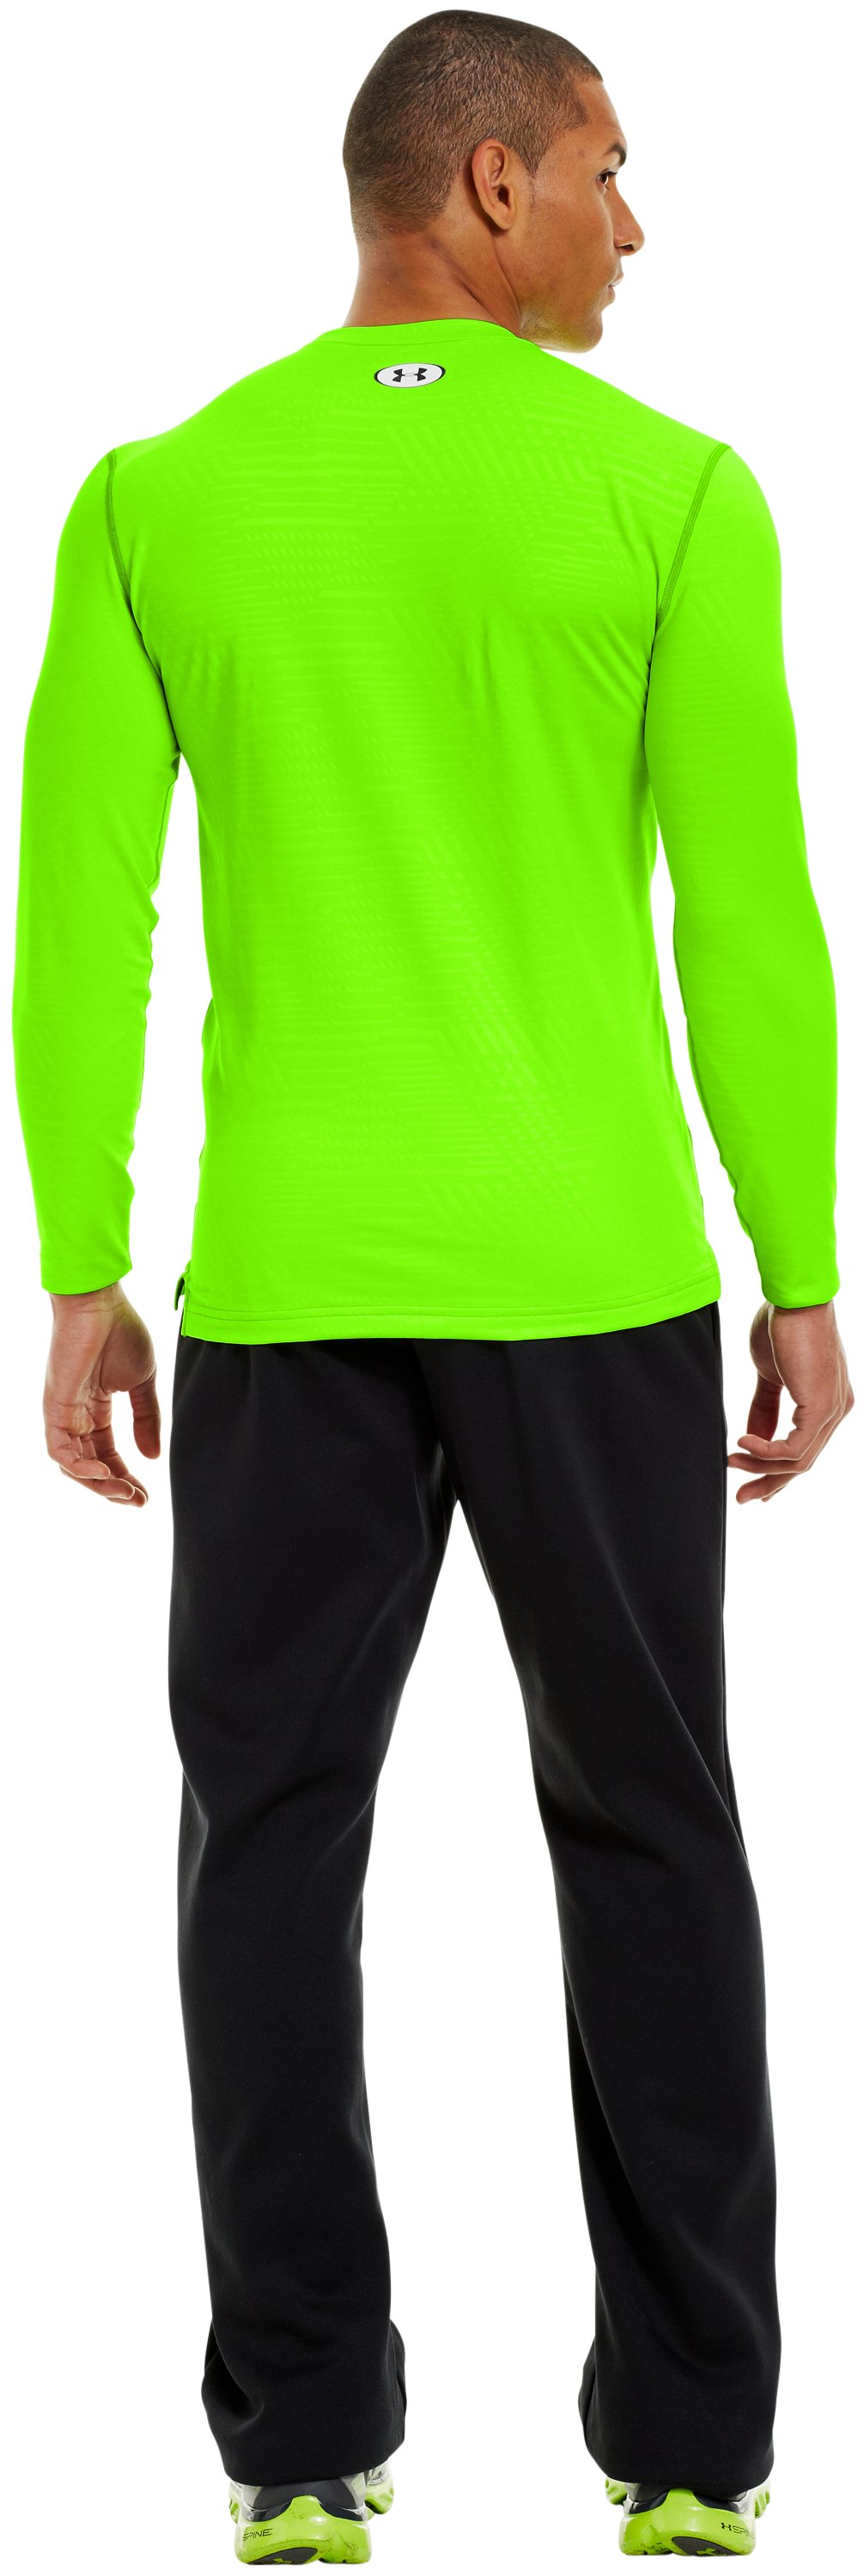 Men's ColdGear® Infrared Evo Printed Fitted Crew, HYPER GREEN, Back